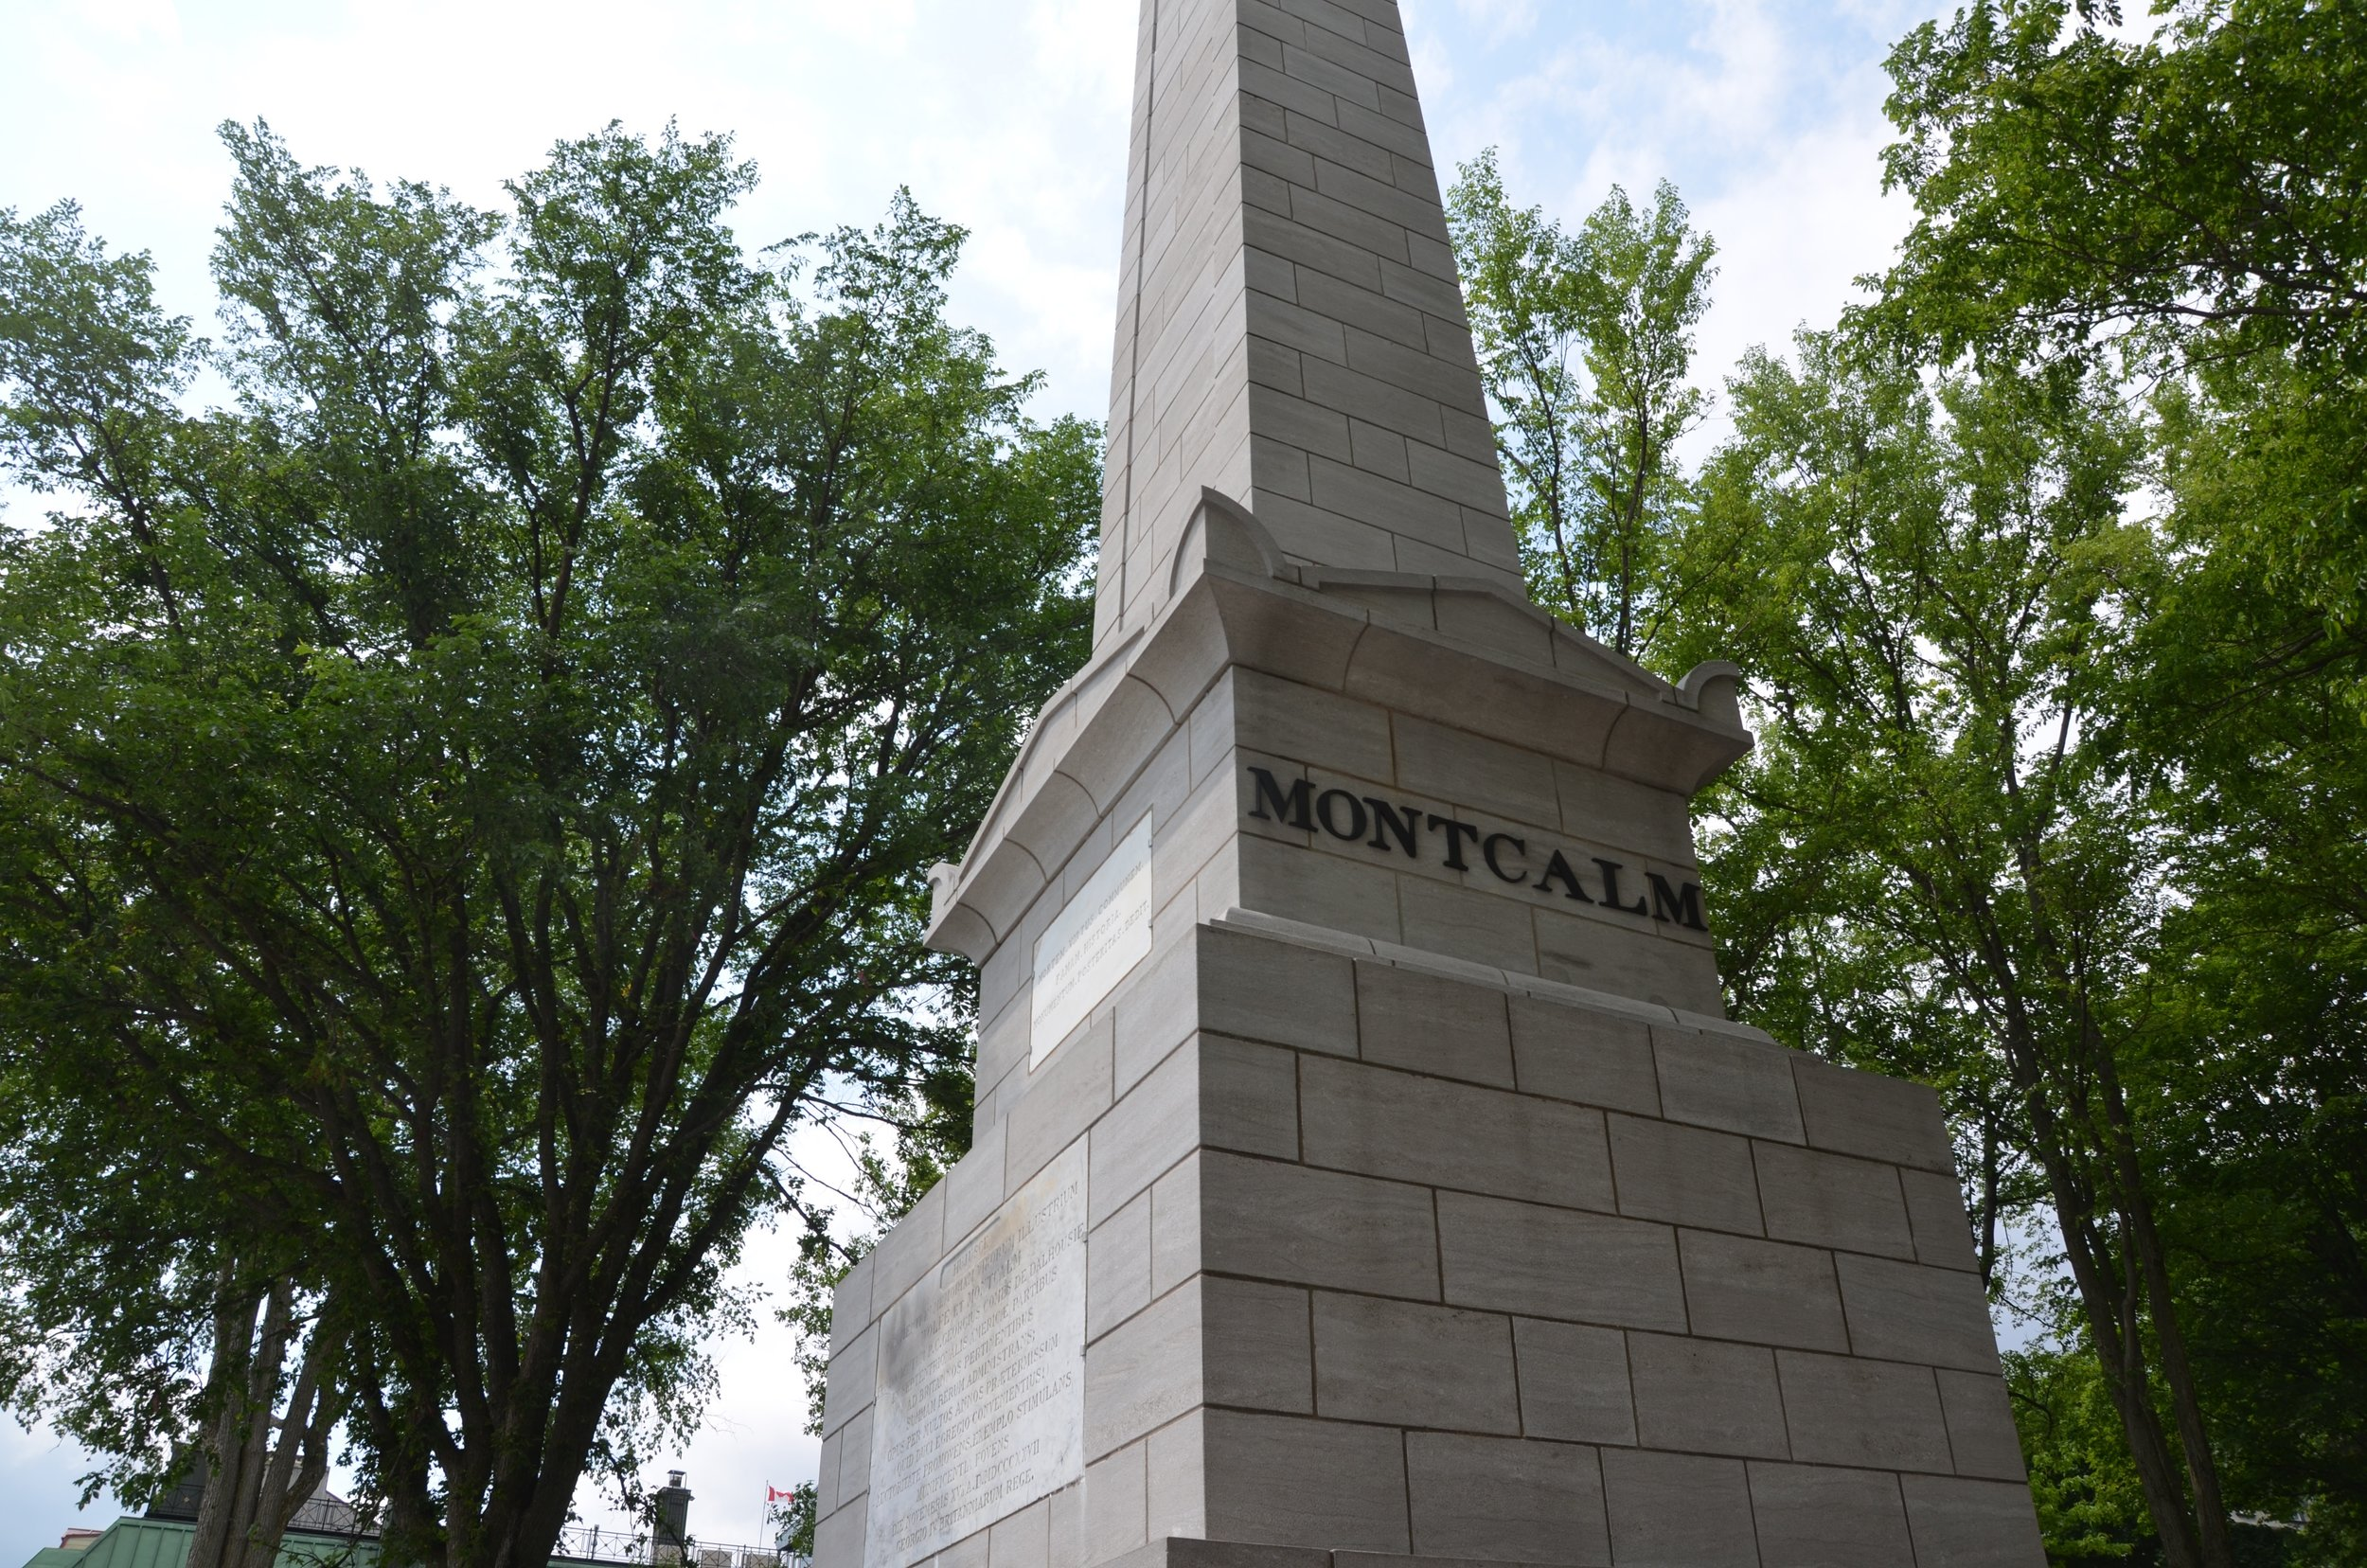 This side of the monument shows Montcalm's name. Wolfe is on the opposite side.The inscription on the front is written in Latin.